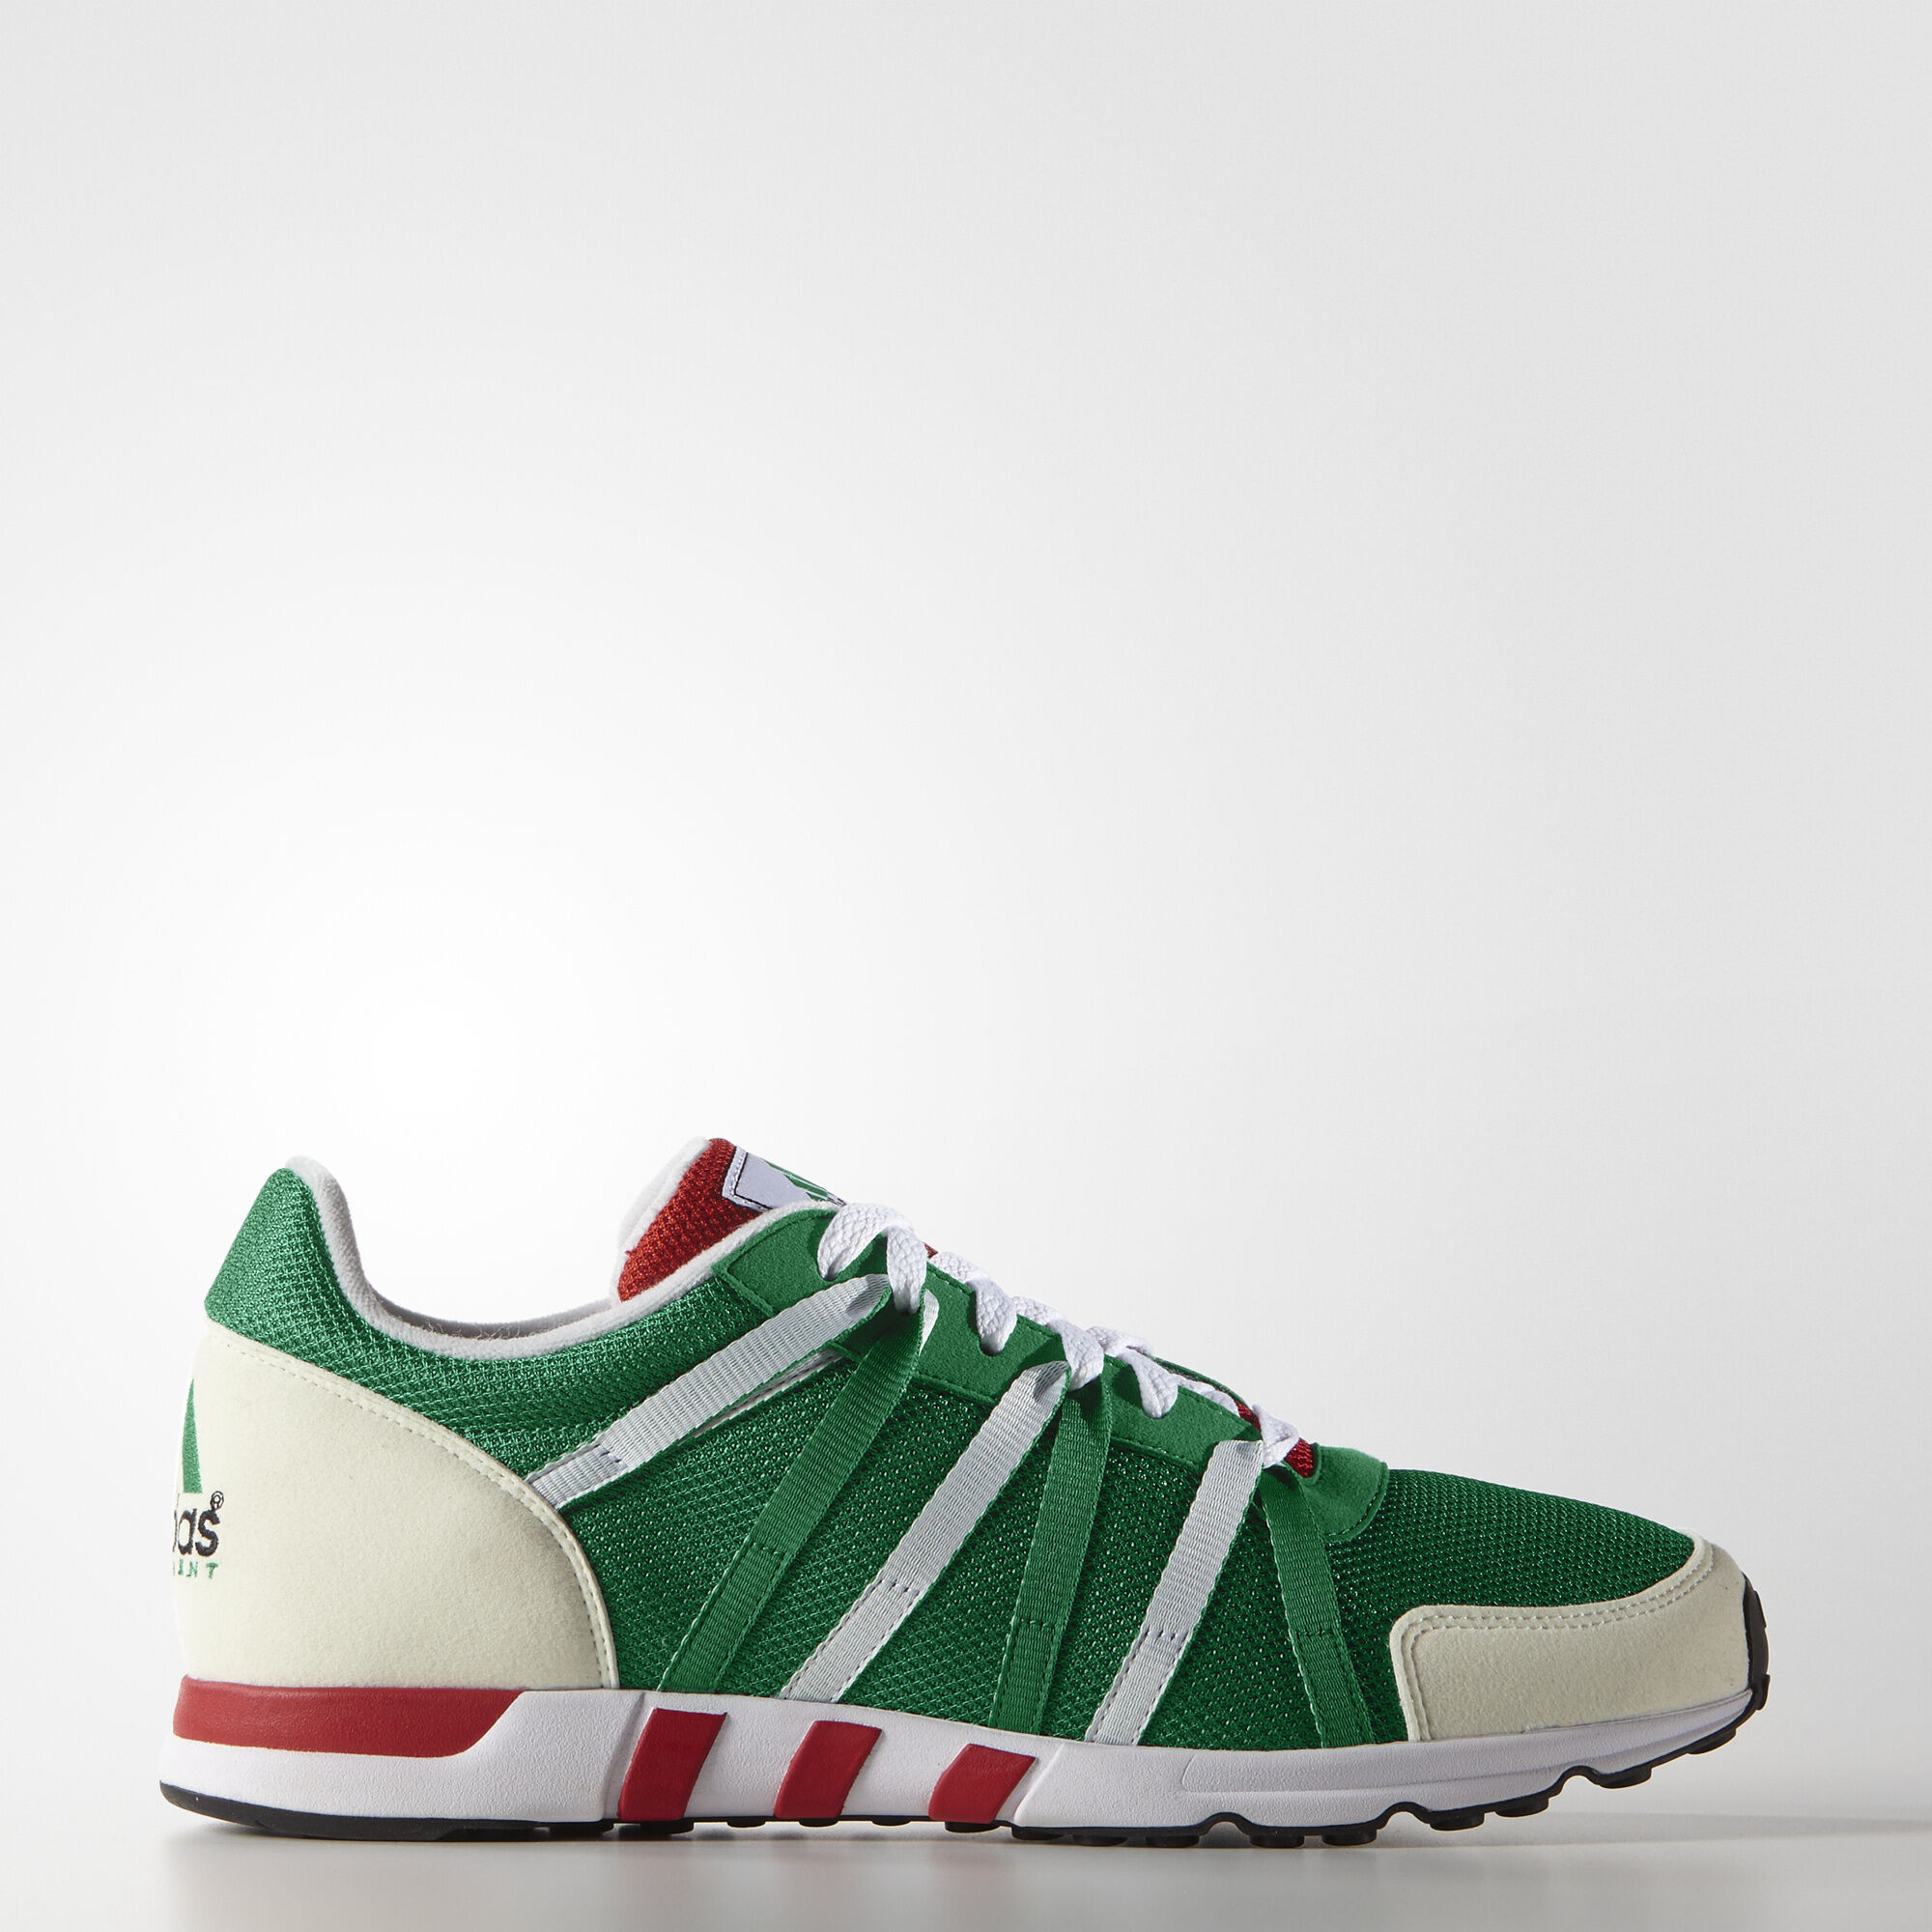 adidas EQT Running Fall 2014 Preview